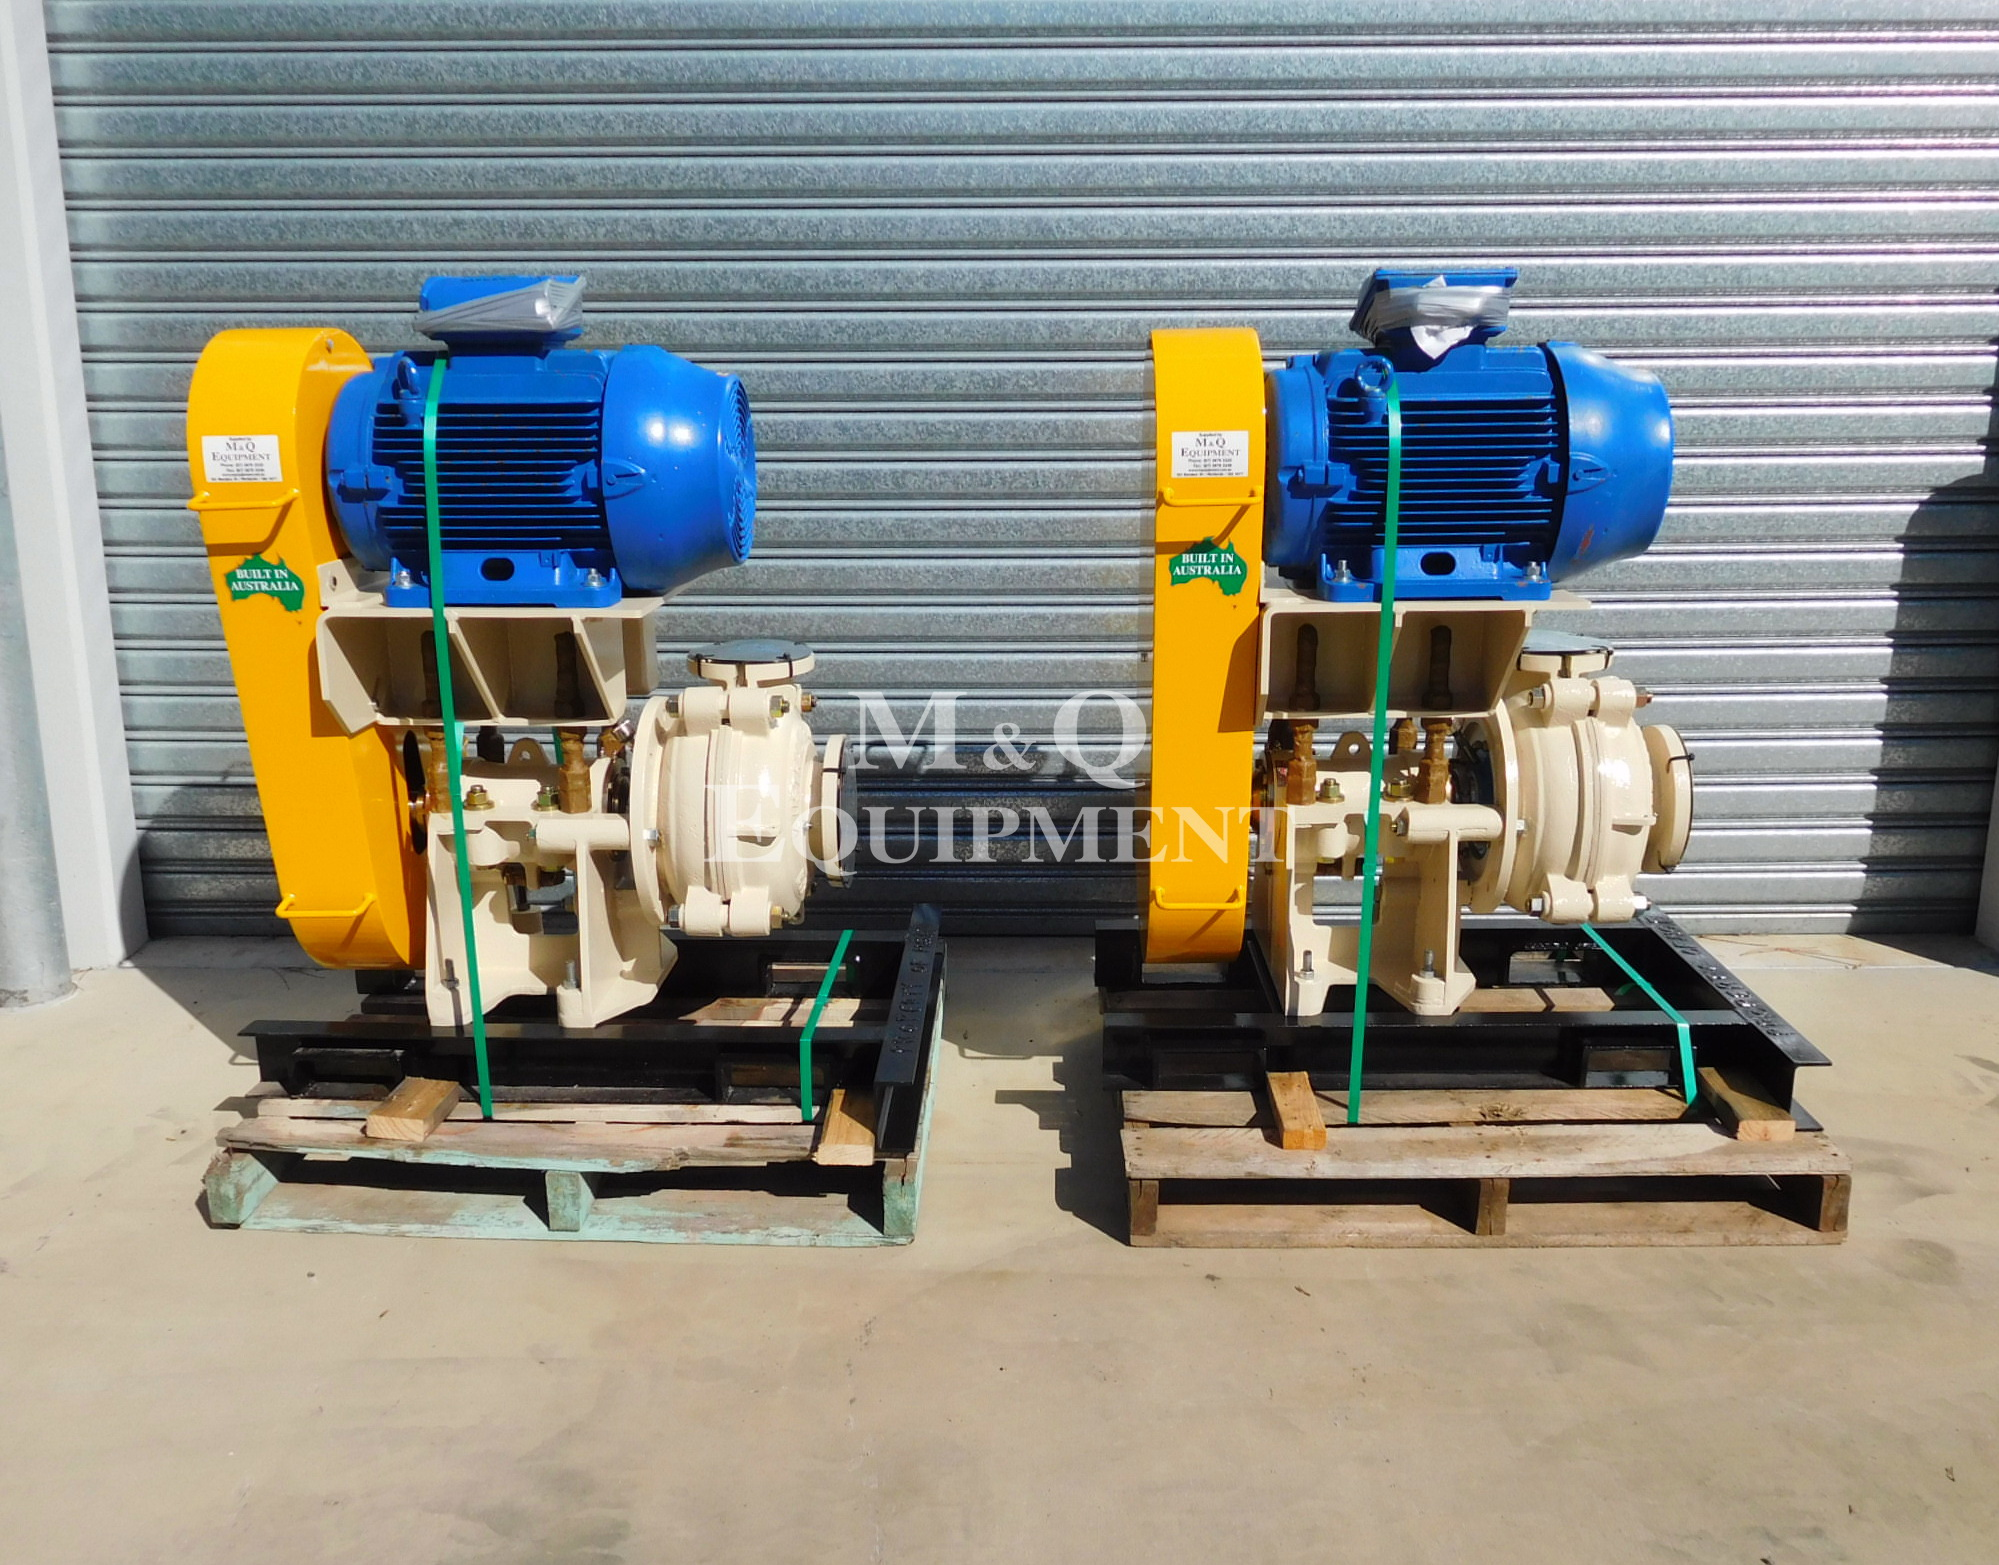 Sold Item 427 - 2 x Austral 4/3 DAH Pumps